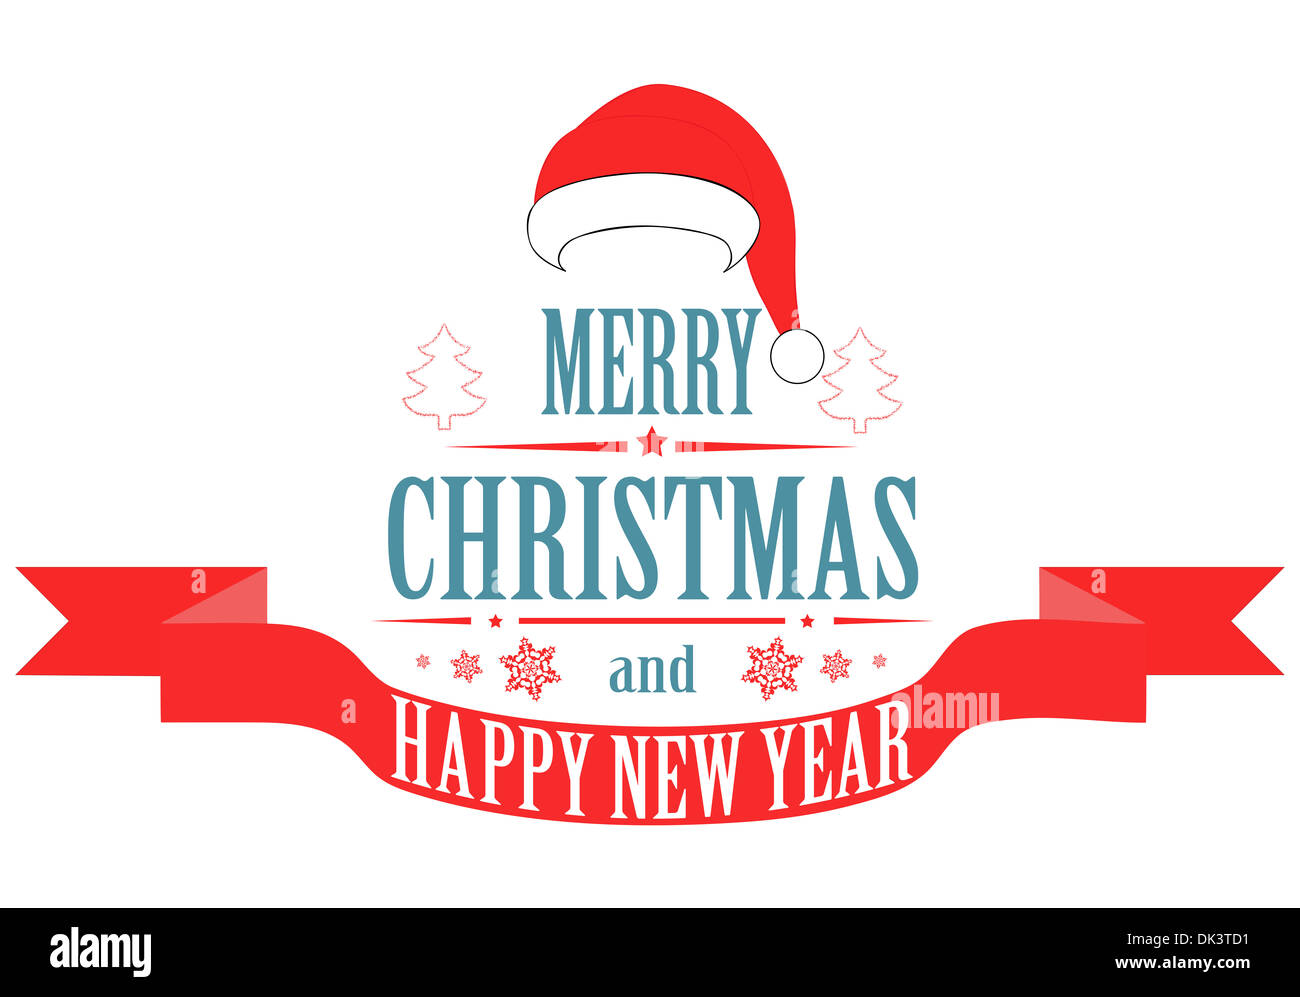 Merry christmas banner vector stock photo royalty free